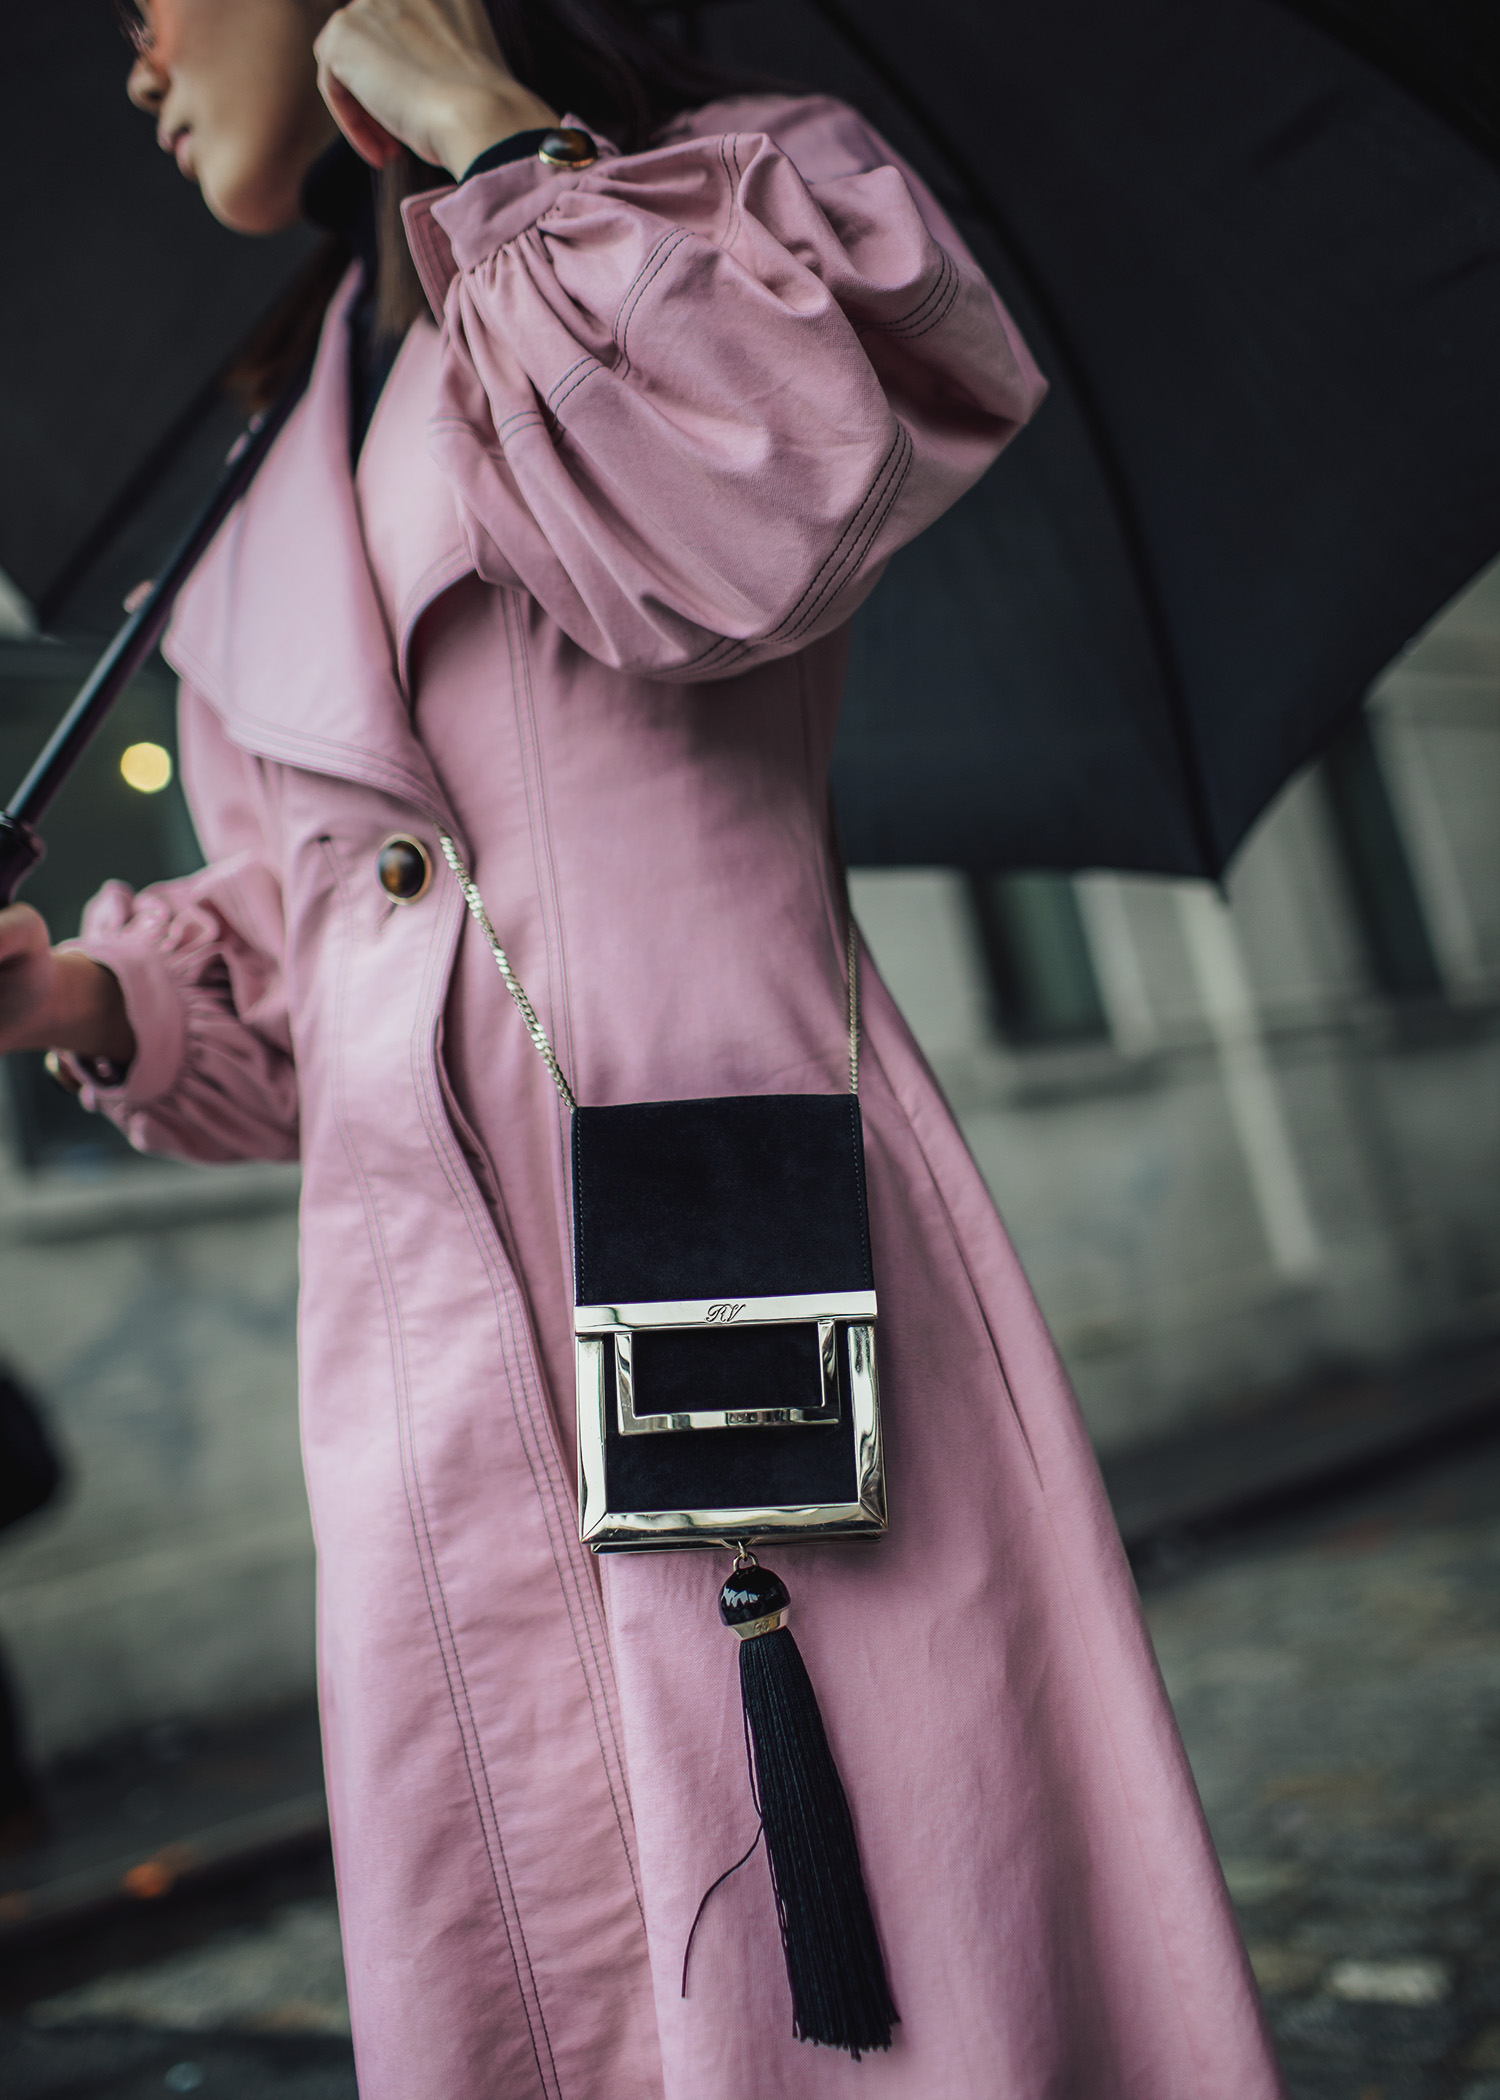 All pink outfit Jenny Tsang of Tsangtastic wearing claudia li pink coat dress roger vivier box bag sigerson morrison white pointed boots during new york fashion week